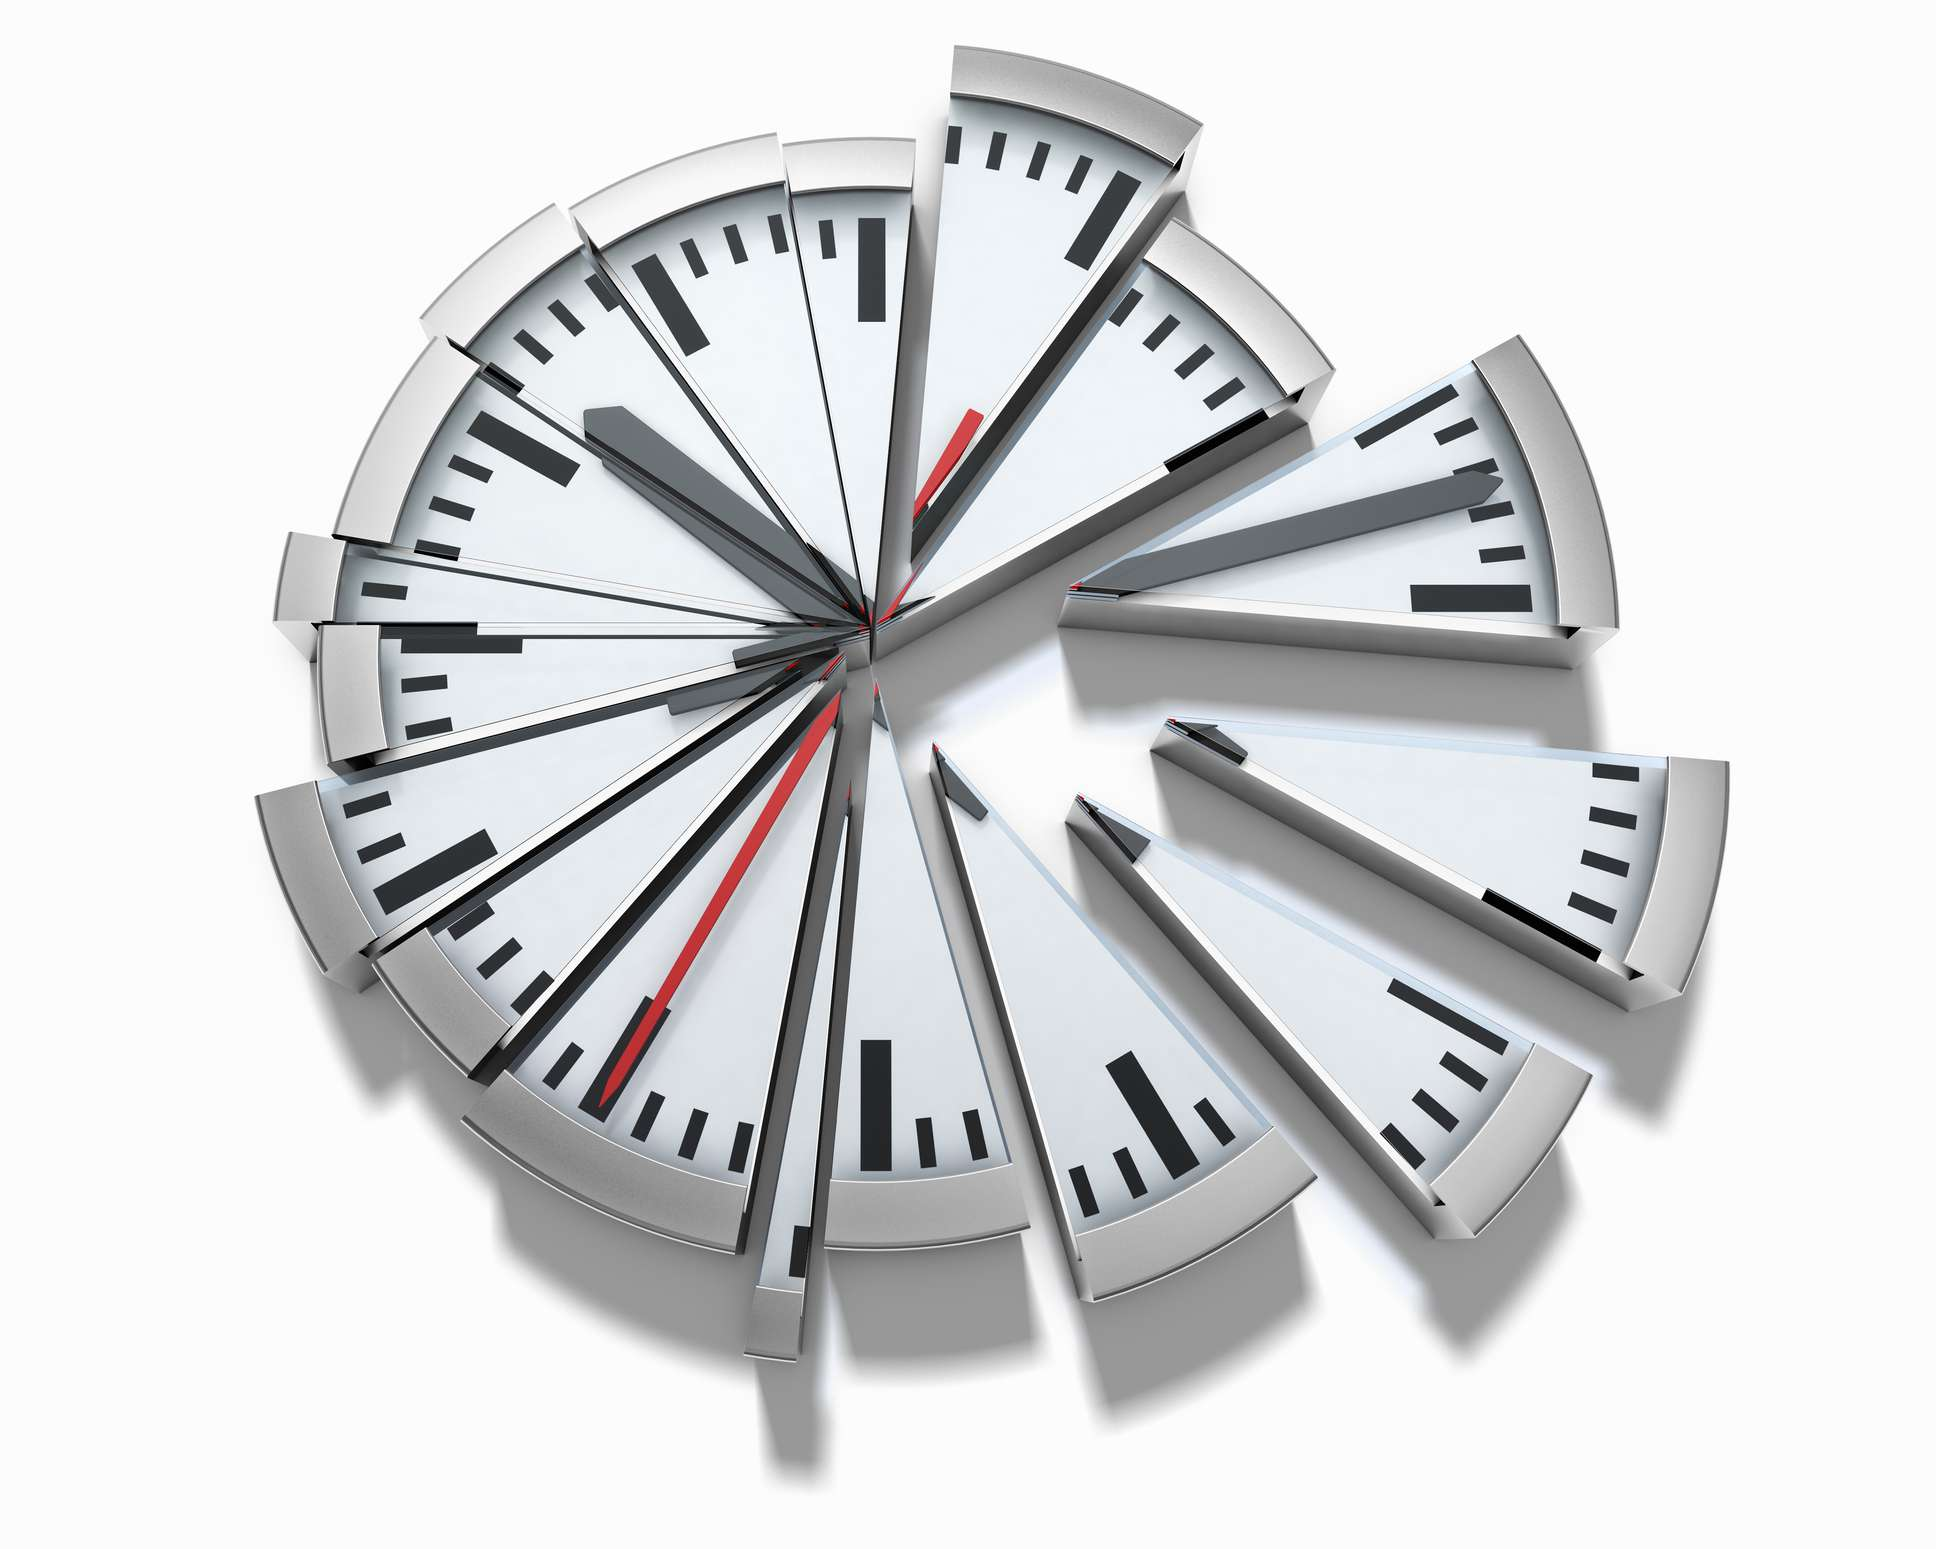 A clock is divided into multiple slices, like a pie.